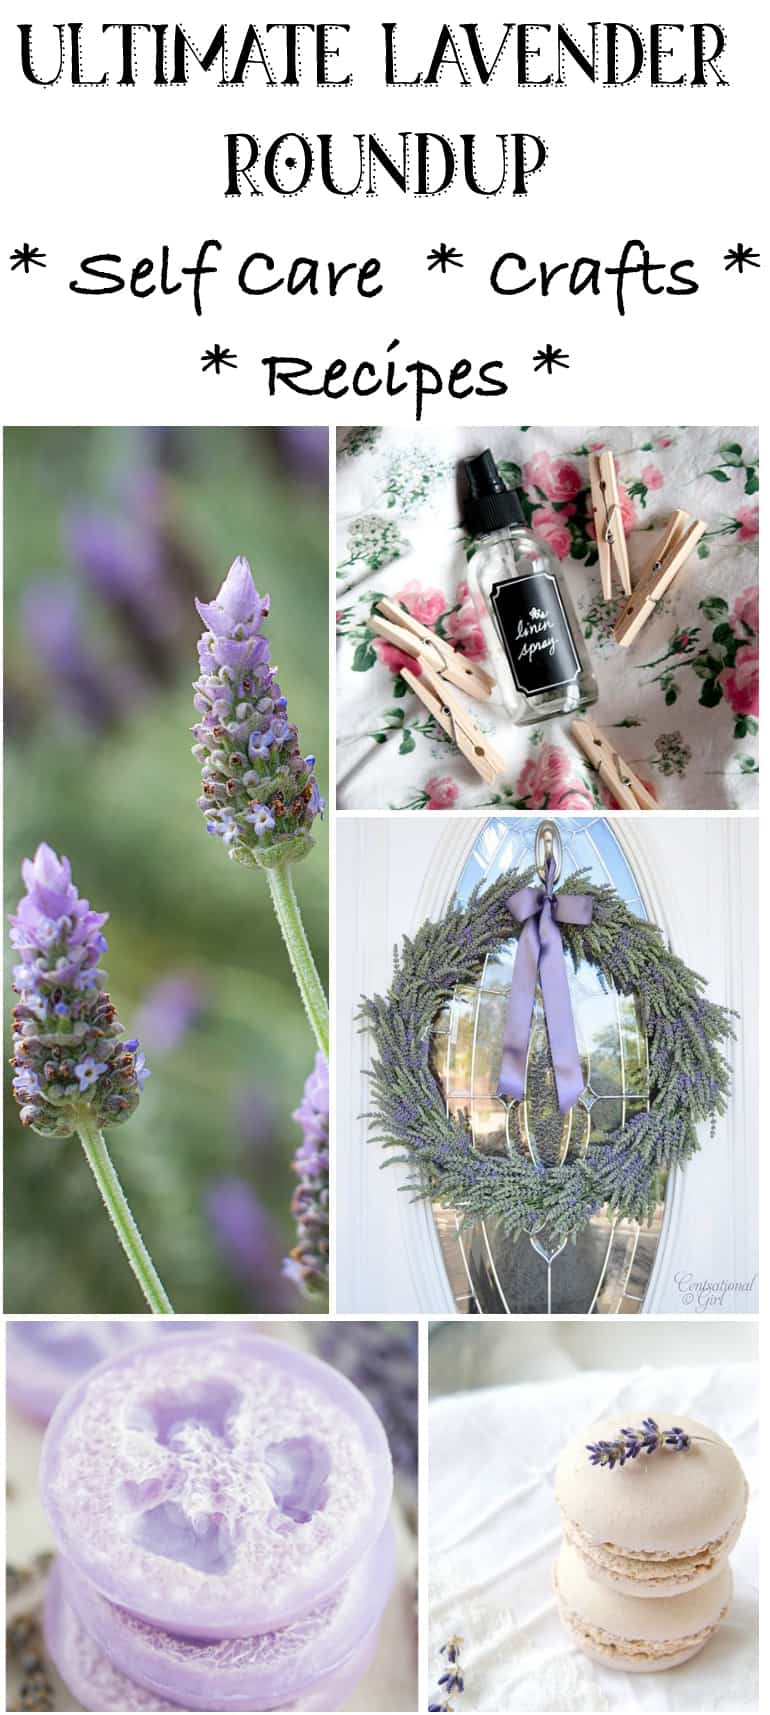 Ultimate Lavender Crafts Tutorials Roundup – Lavender Crafts to DIY